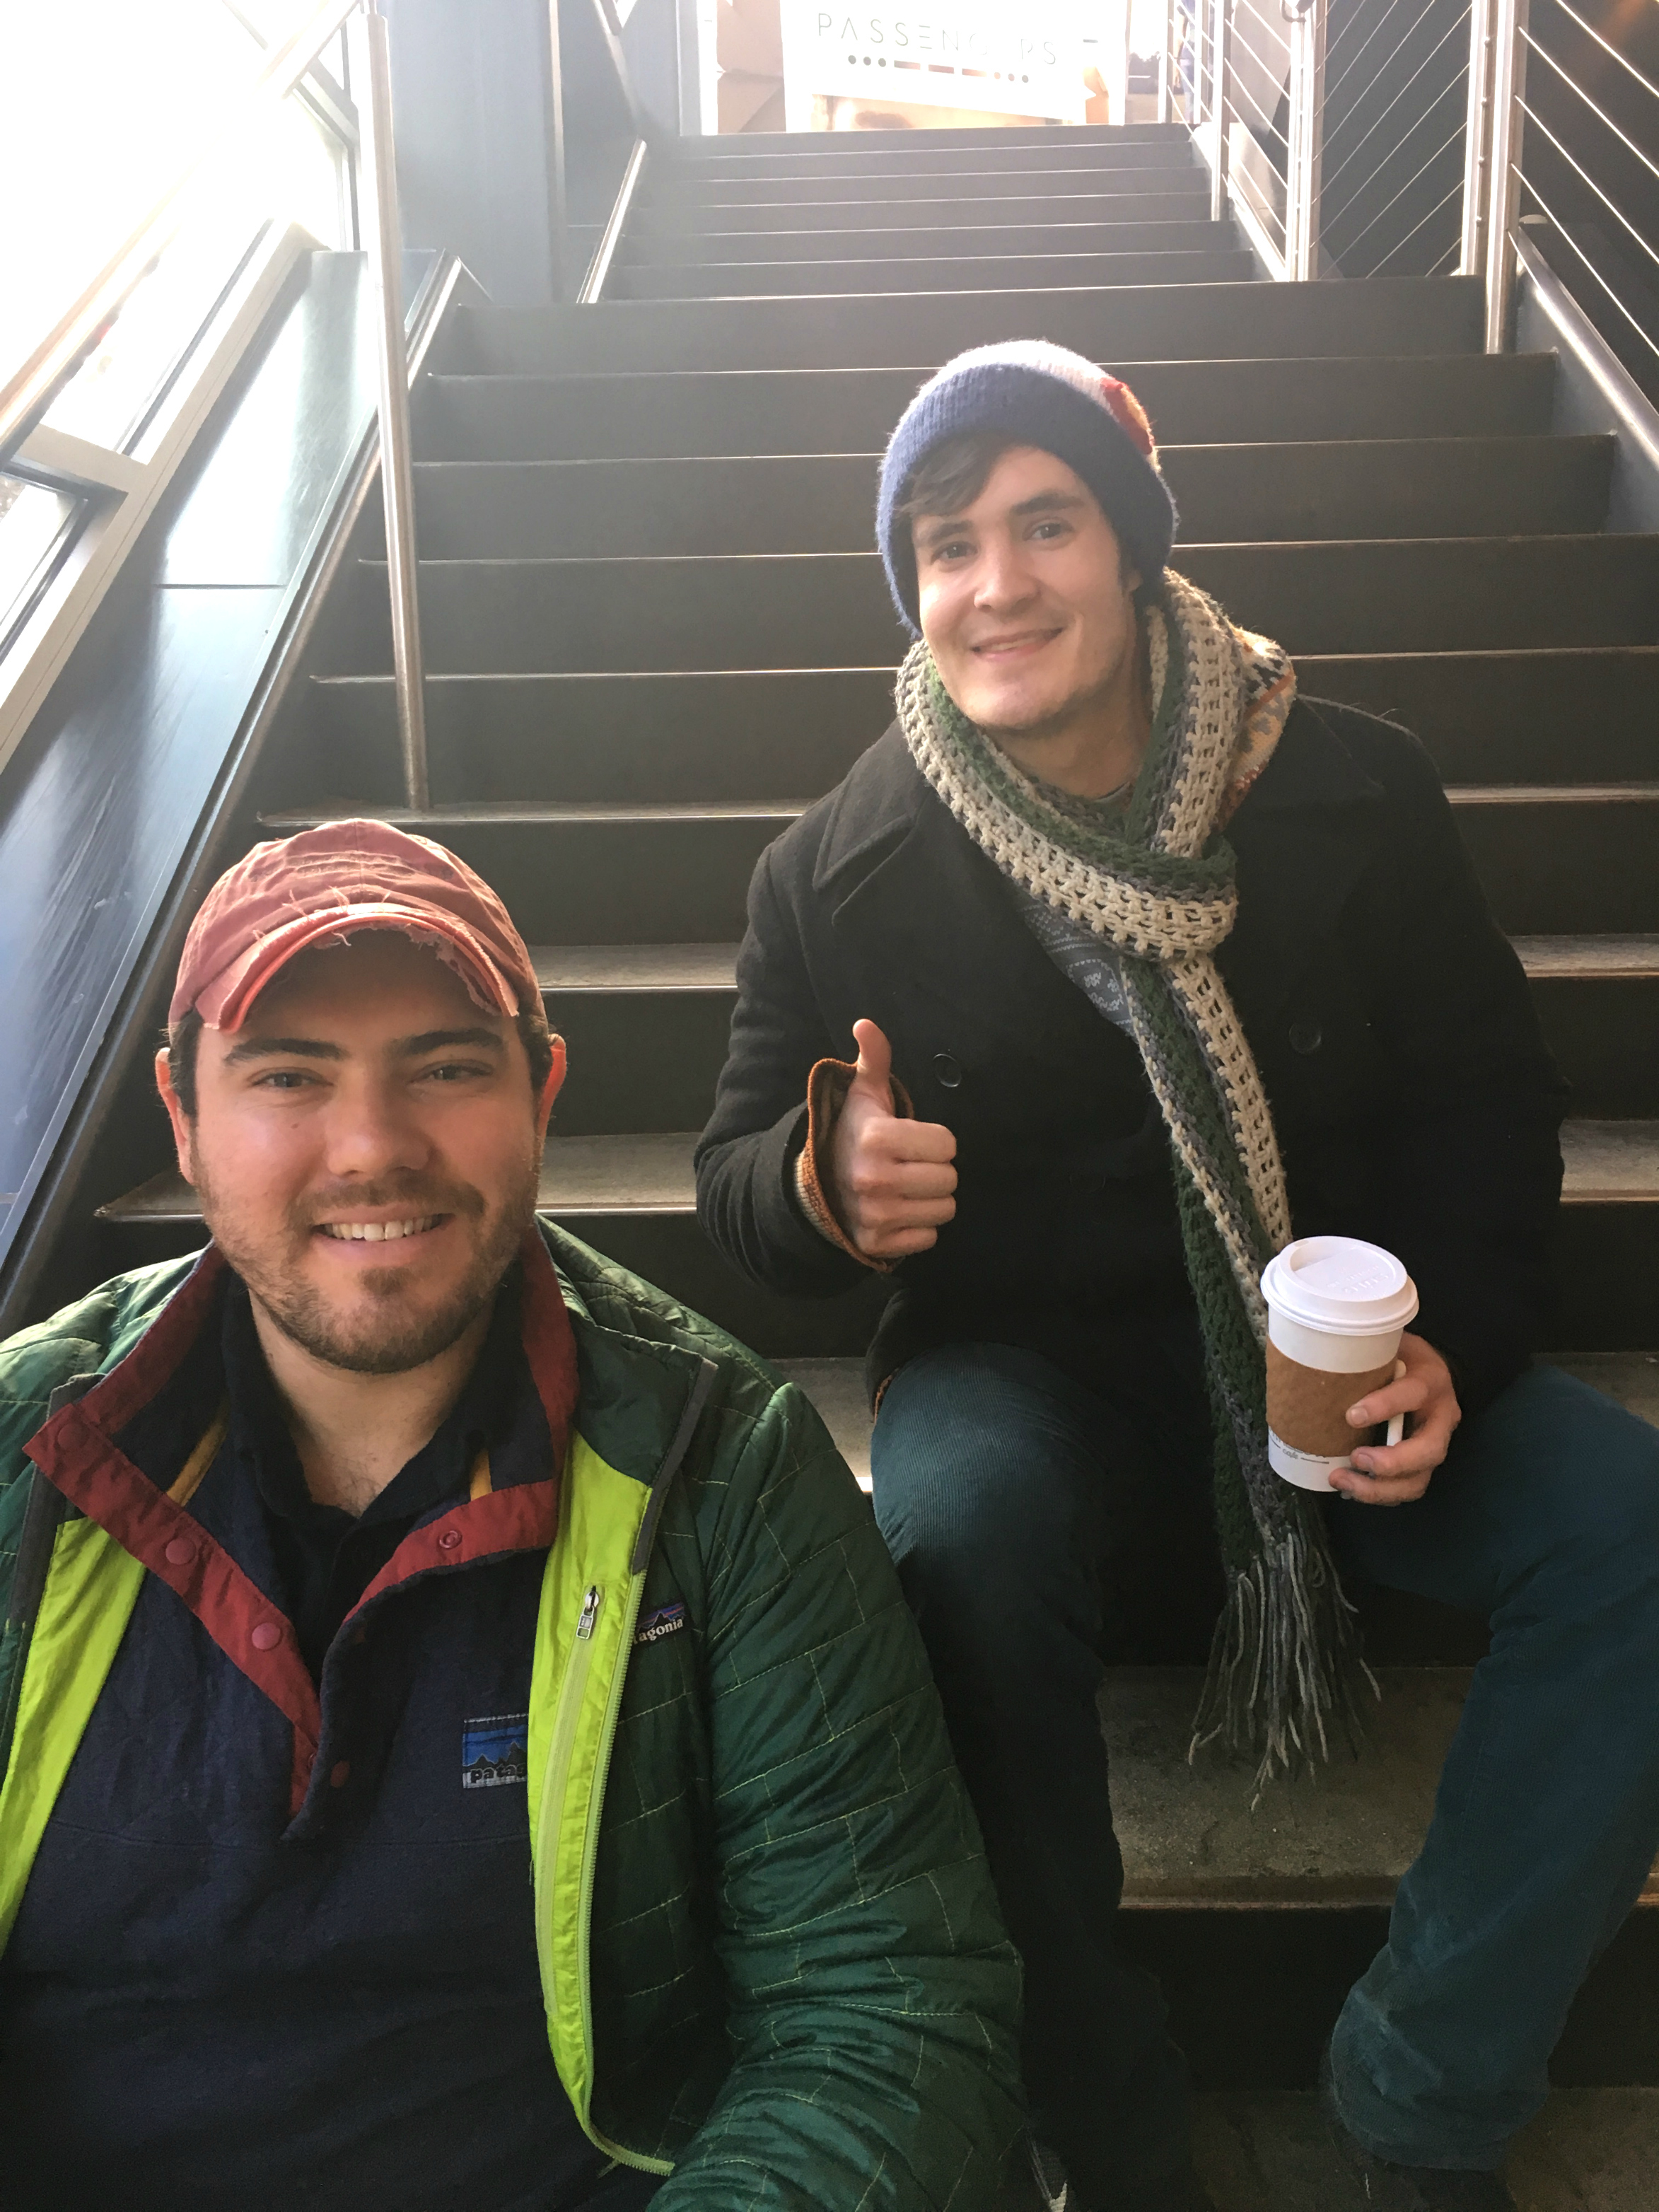 Elliot Anderson (left) and Nate Cotanch wait in line mid-day on December 16.